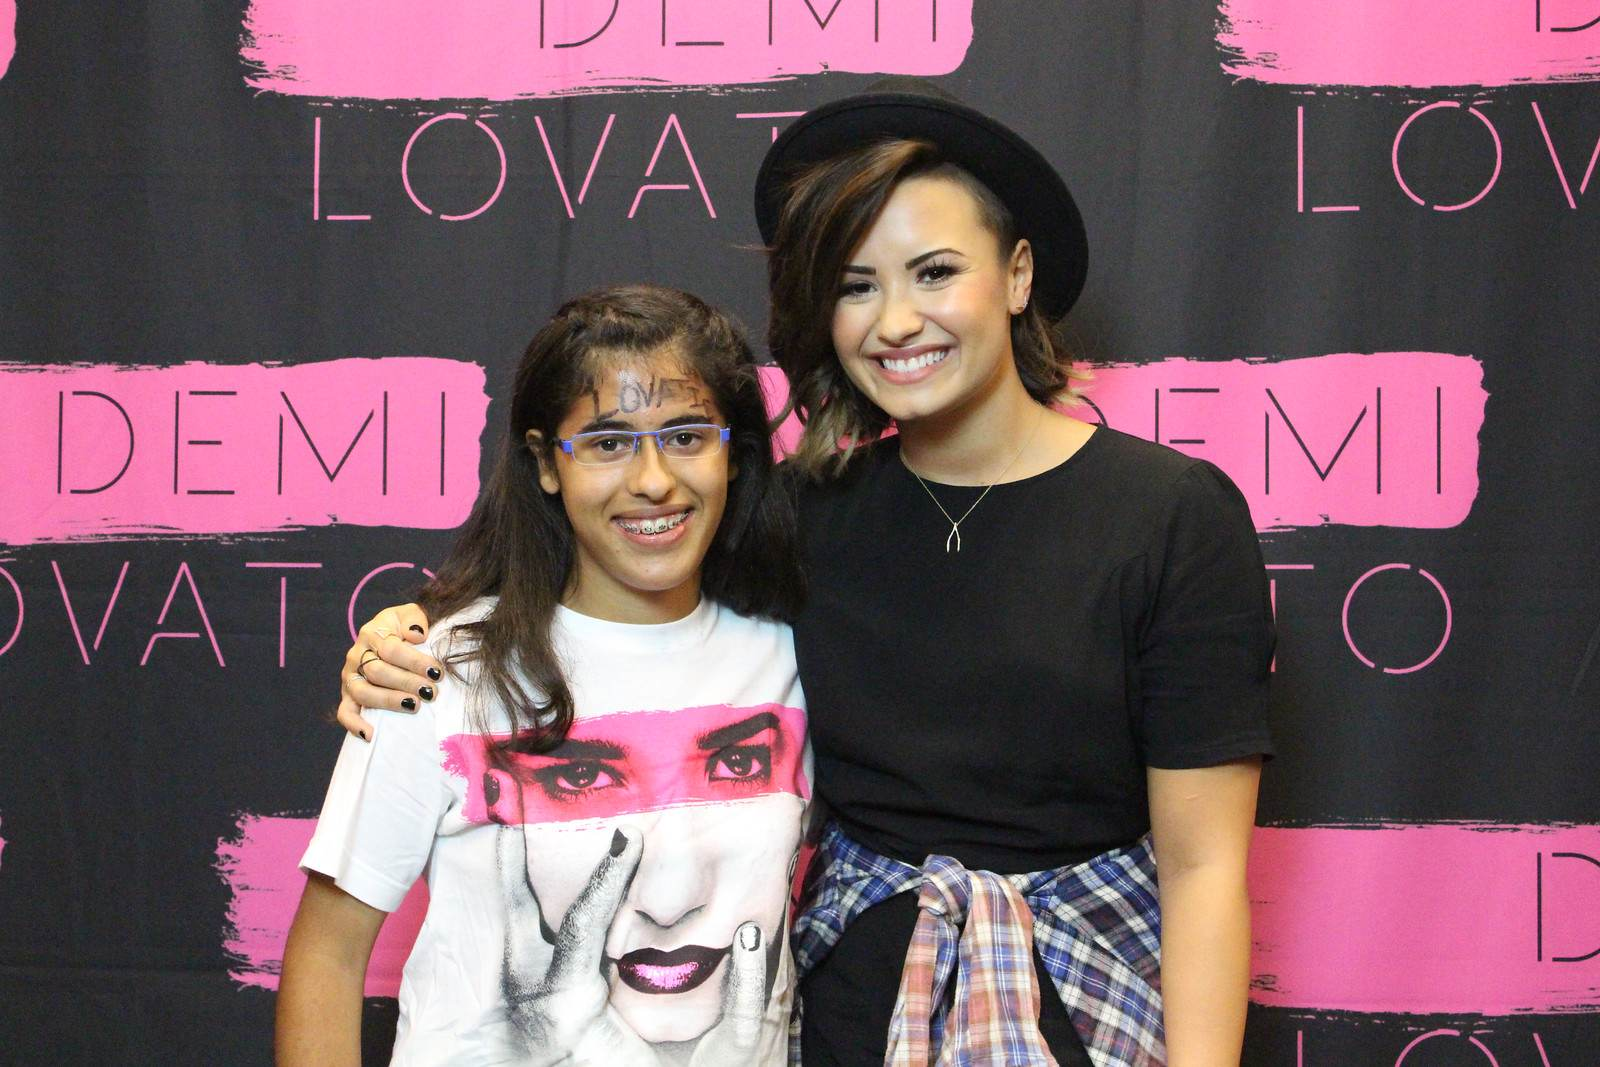 Demi Lovato Meet And Greet at Demi Lovato World Tour in Kansas City